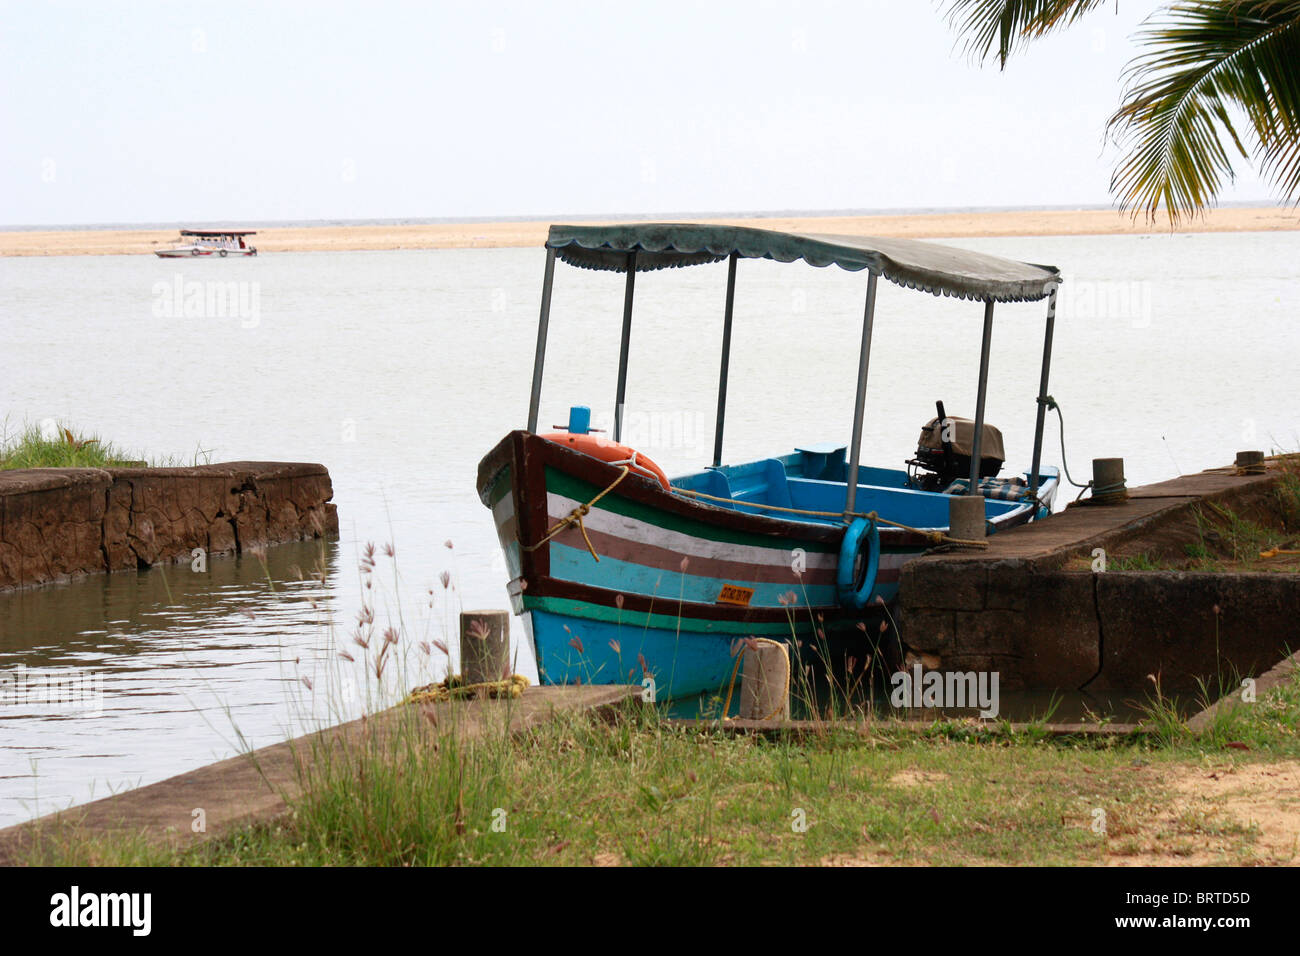 A motor boat parked in side of river bank - Stock Image